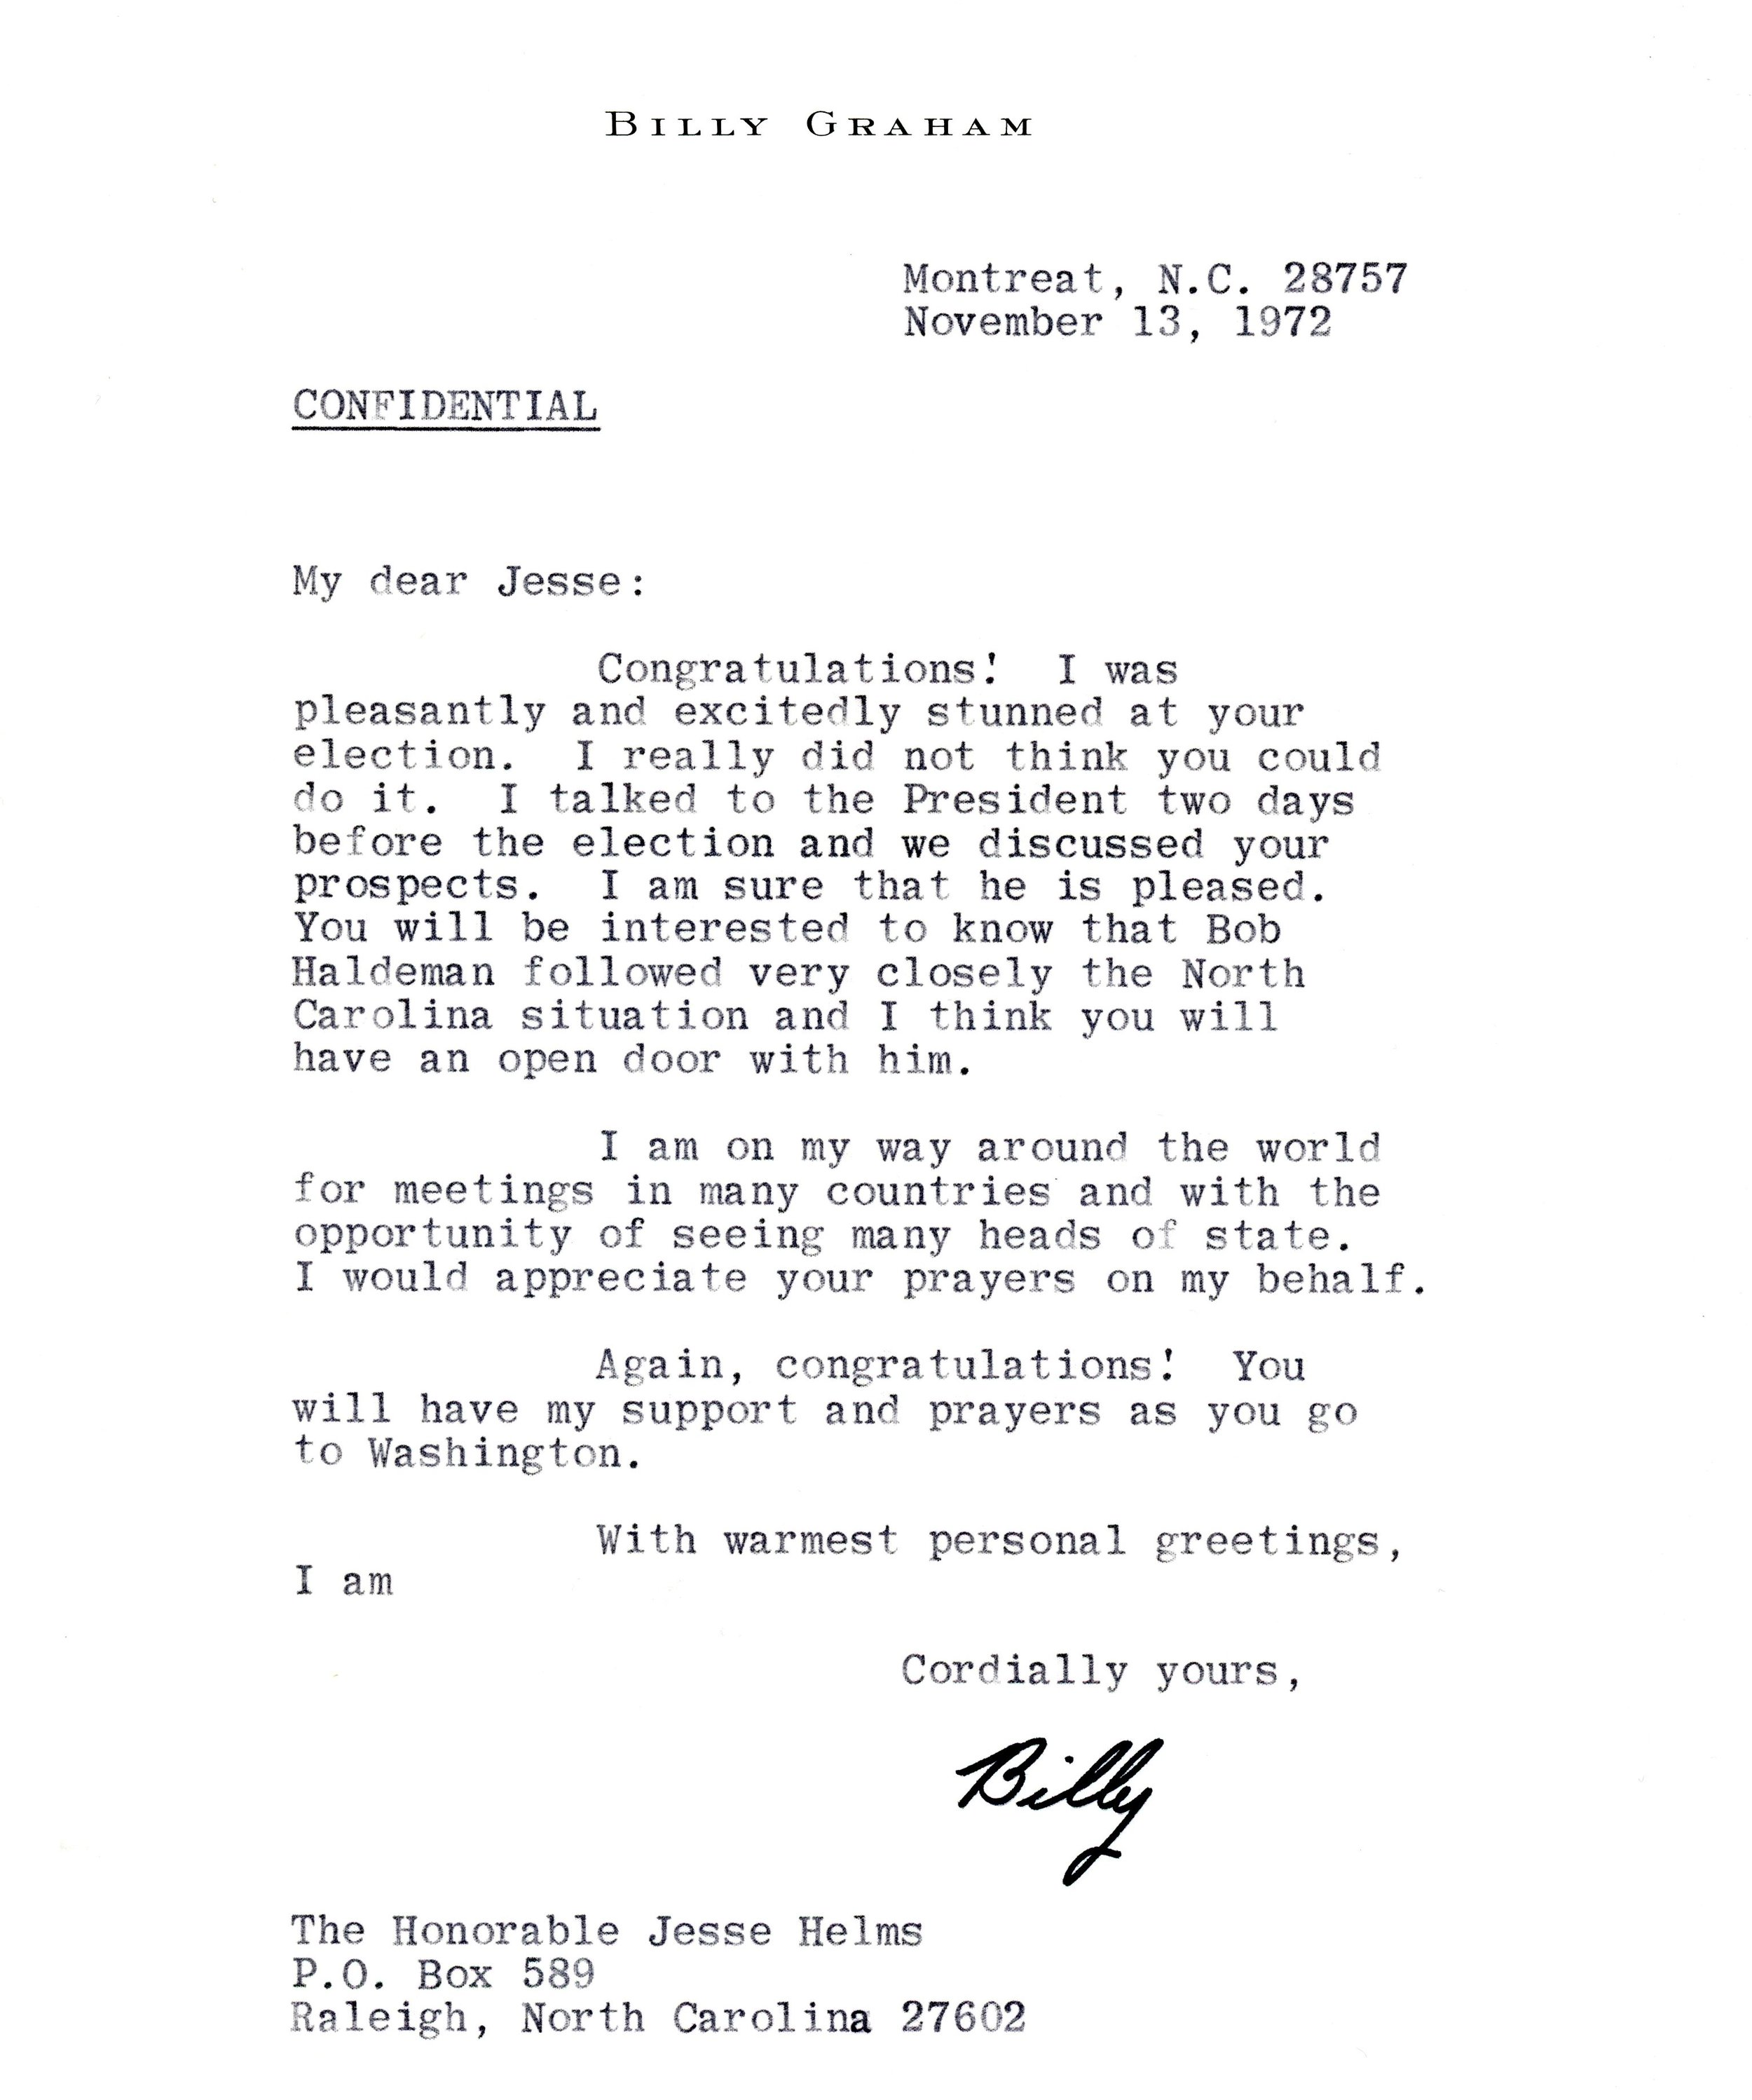 Letter of congratulations to newly elected Senator Jesse Helms from Billy Graham.